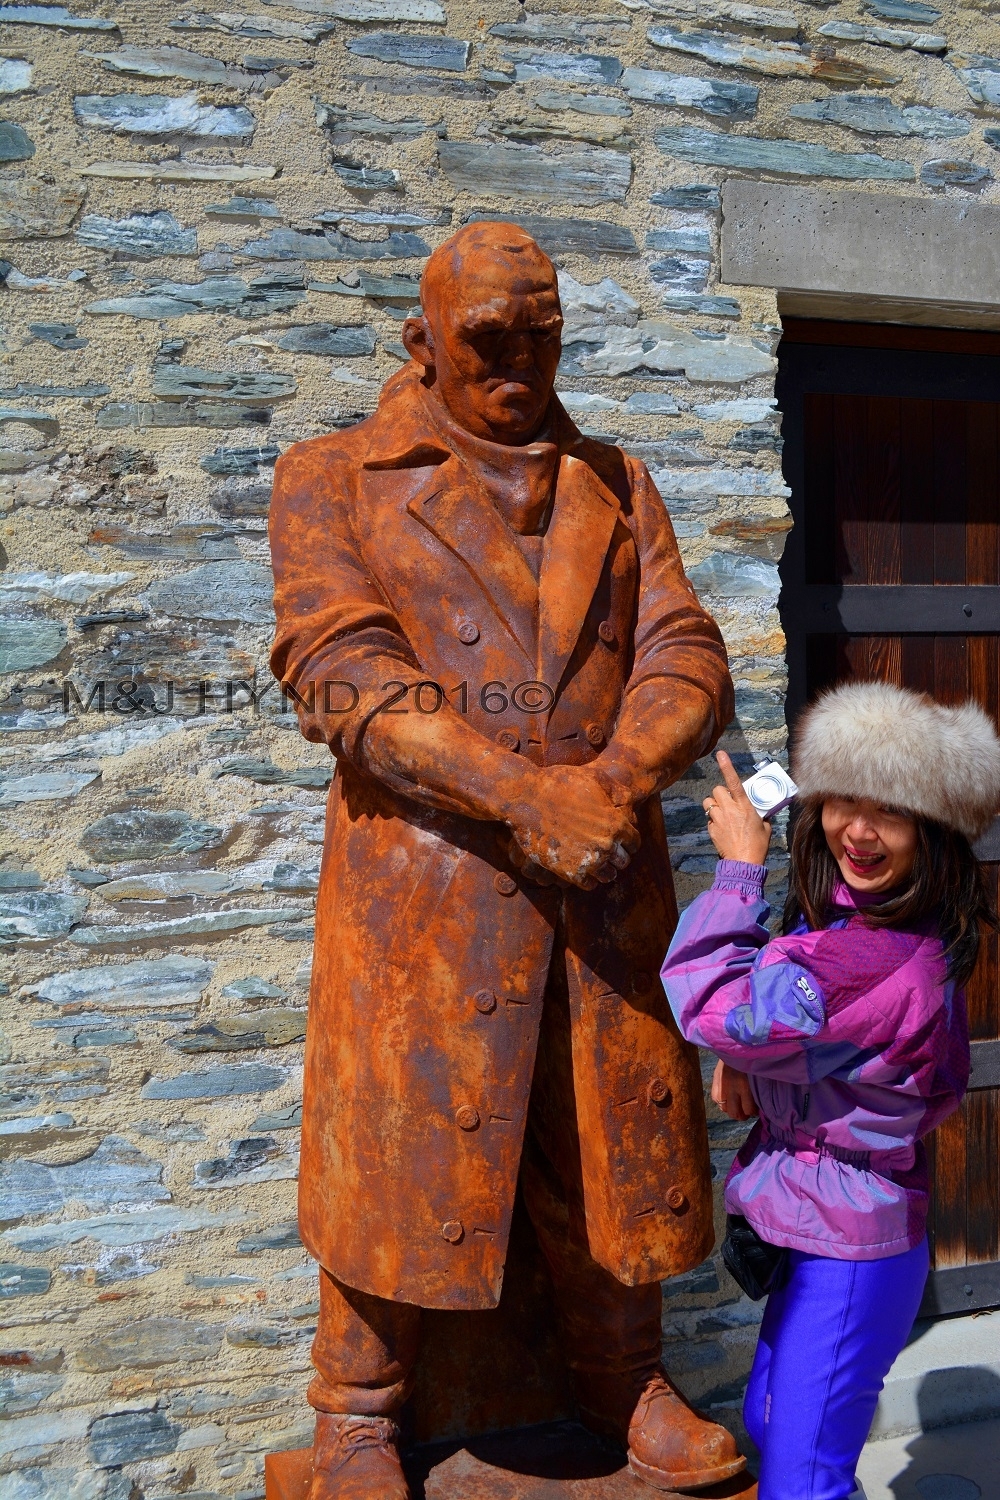 Amisfield Winery large workman statue, Lake Hayes, Central Otago, NZ